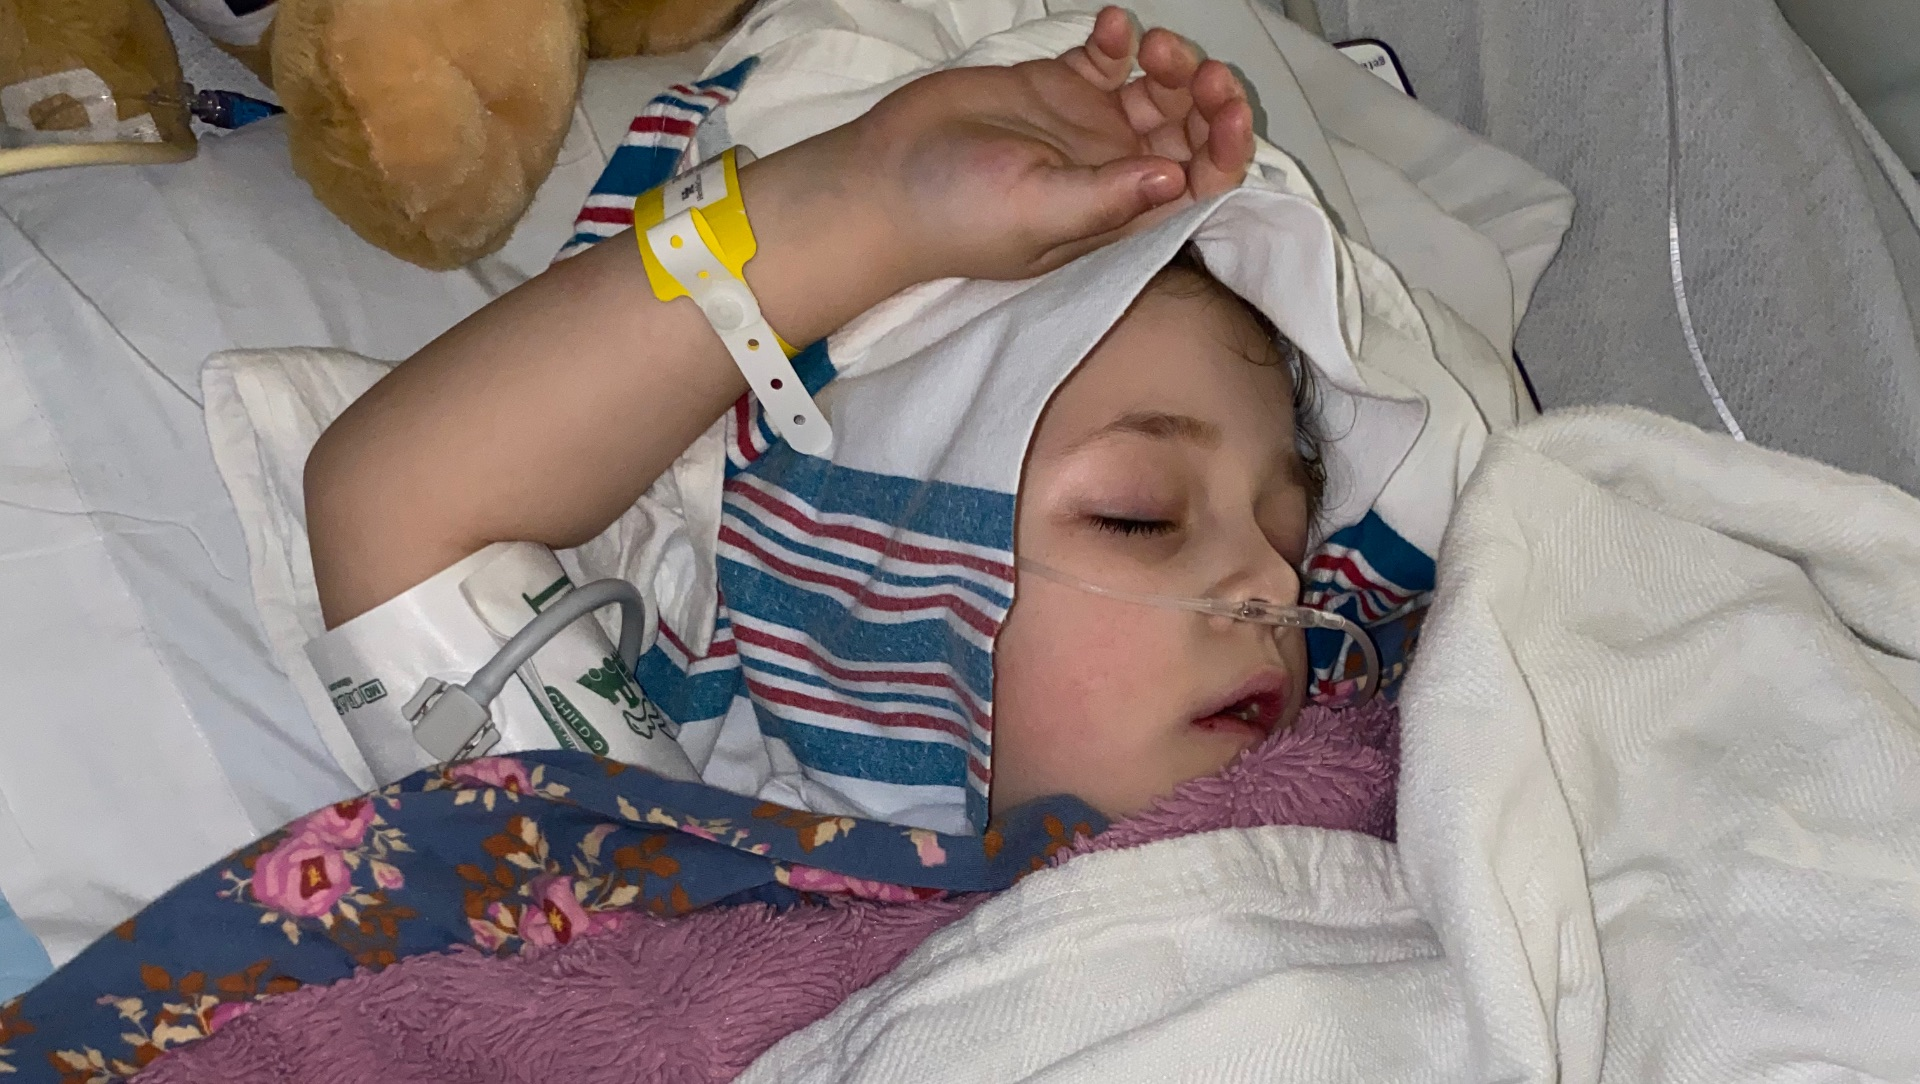 With an oxygen tube connected to her nose, her hand resting on her head, and a cloth over her head, Henley sleeps in a hospital bed.